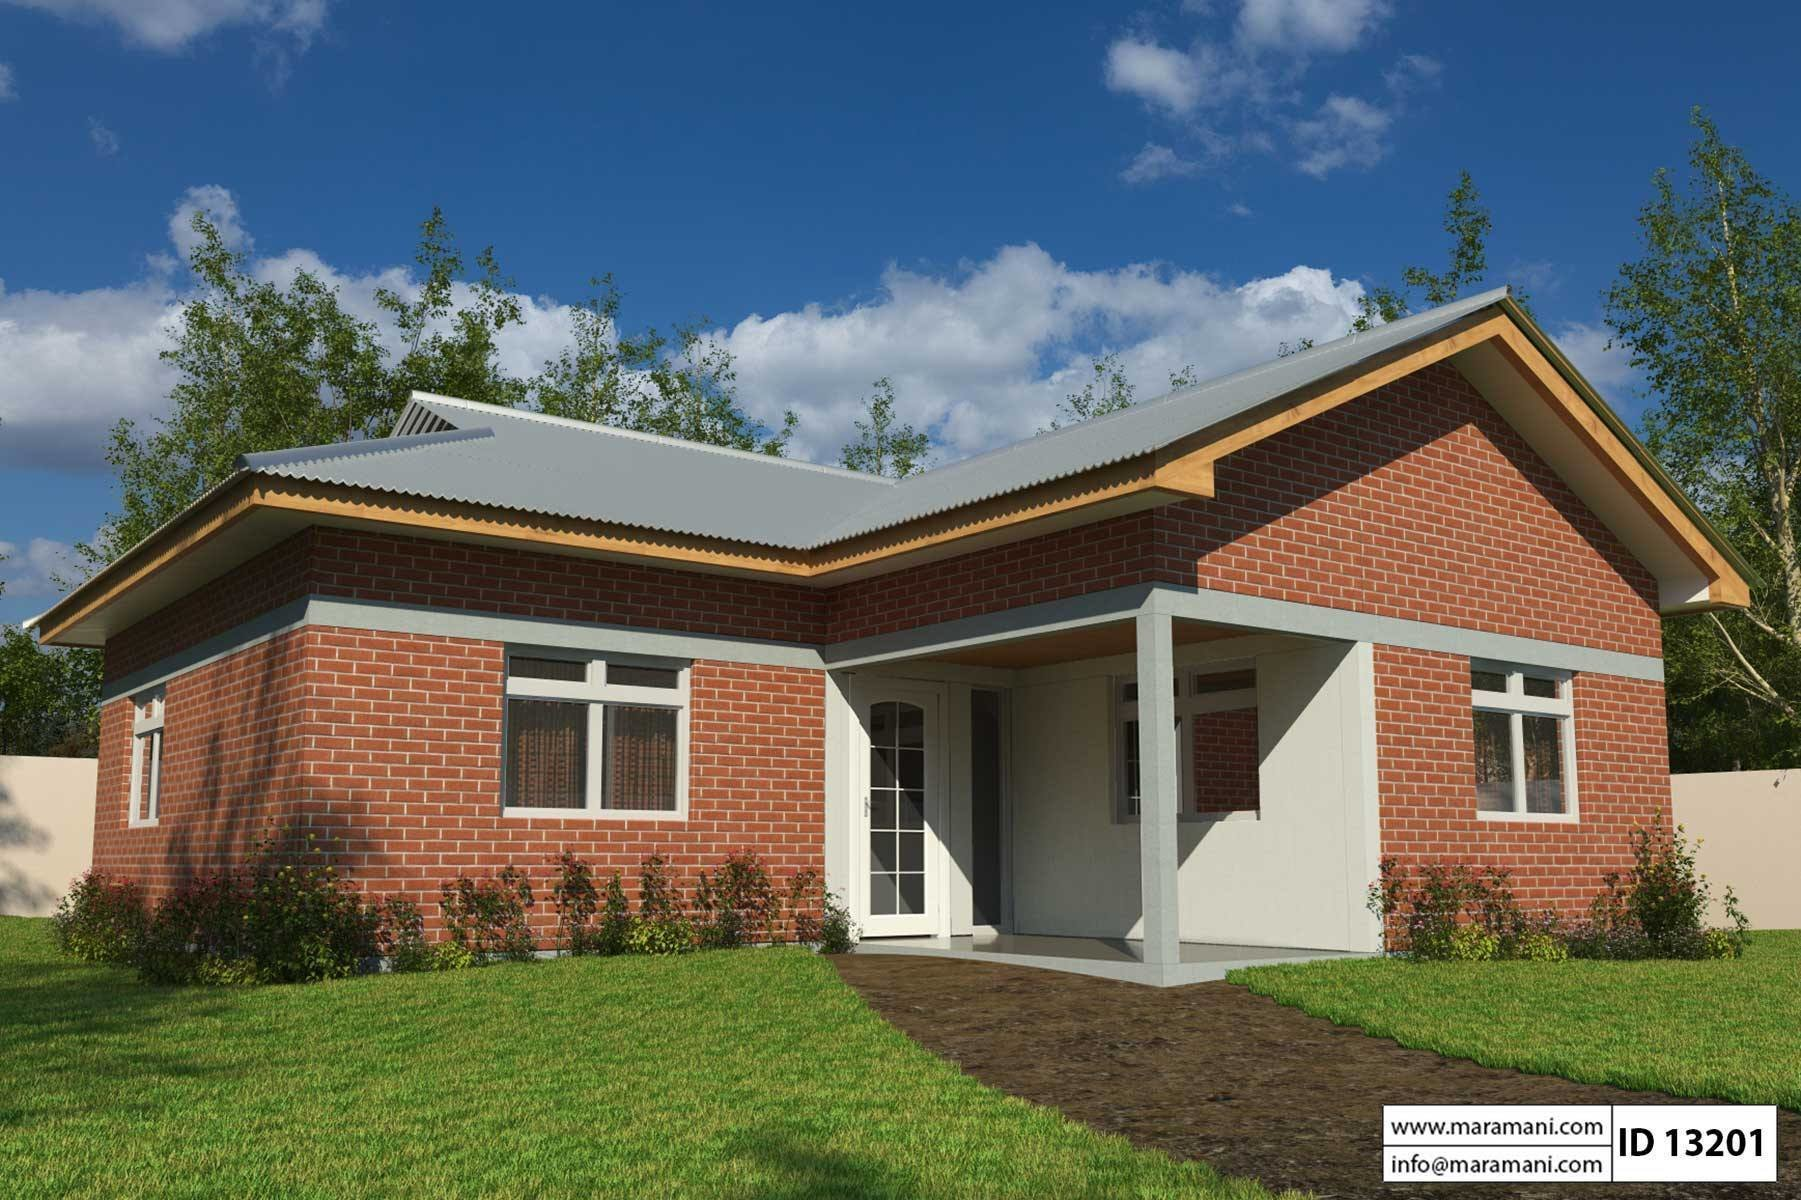 Best Simple 3 Bedroom House Plan Id 13201 House Plans By With Pictures